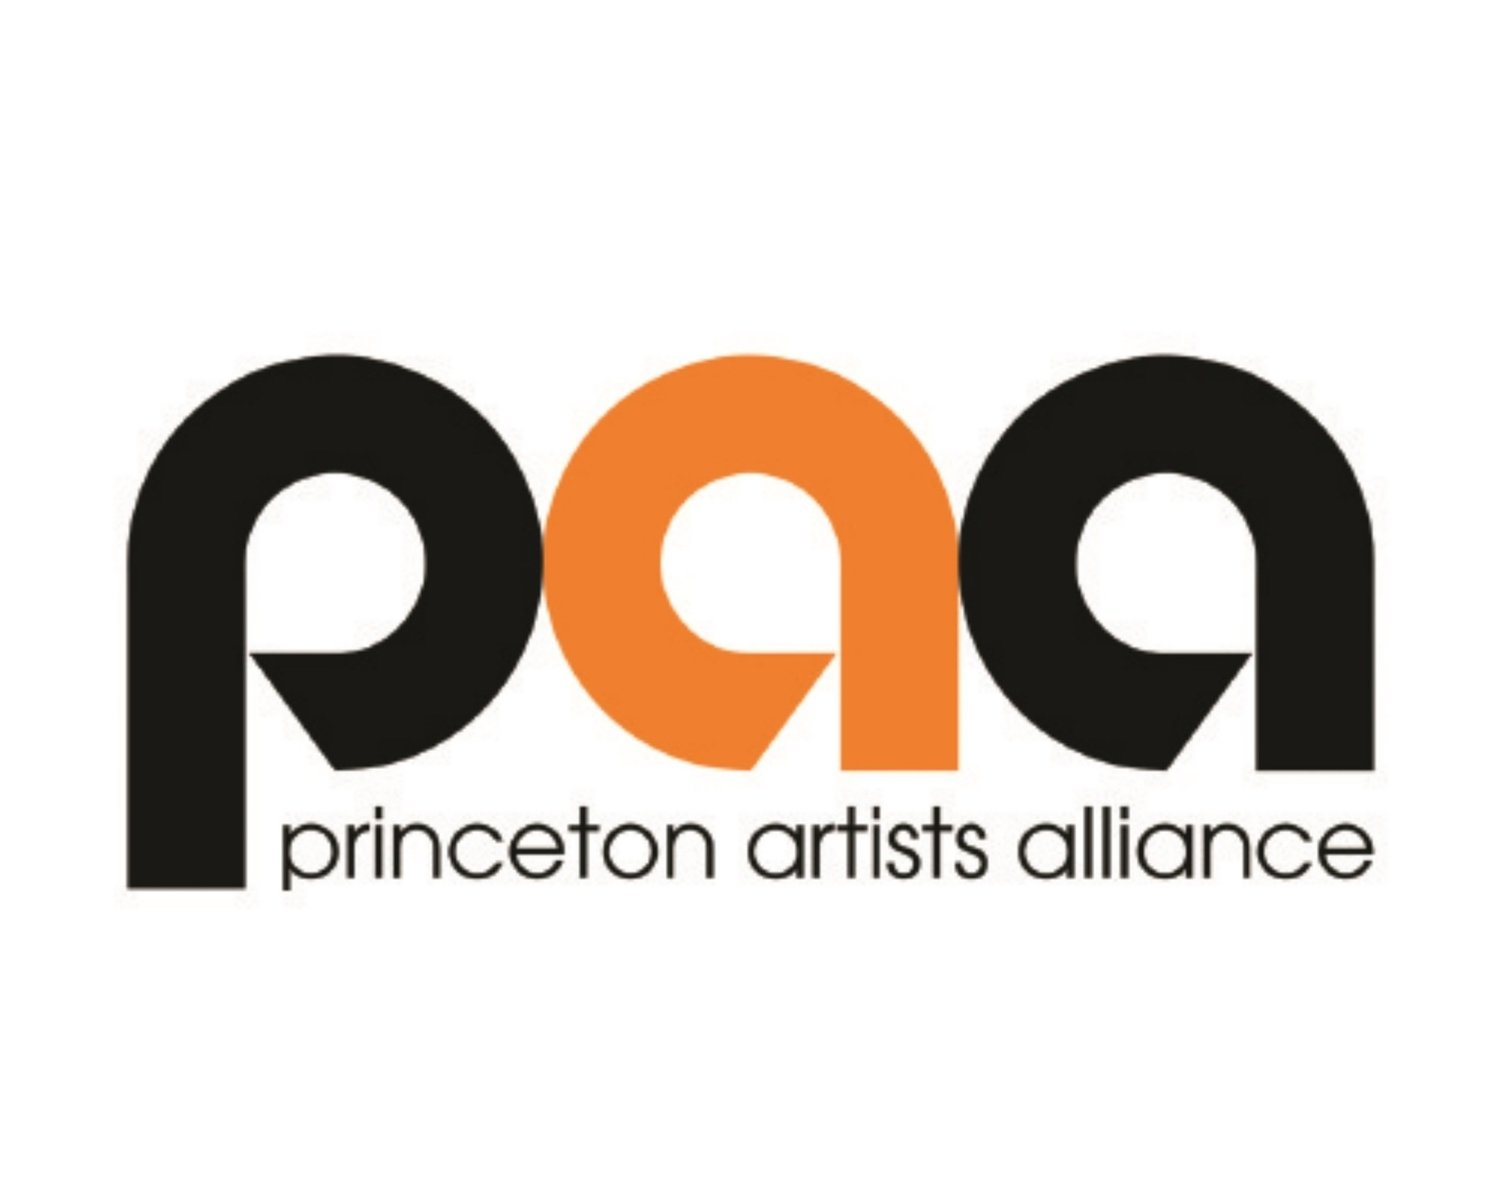 Princeton Artists Alliance